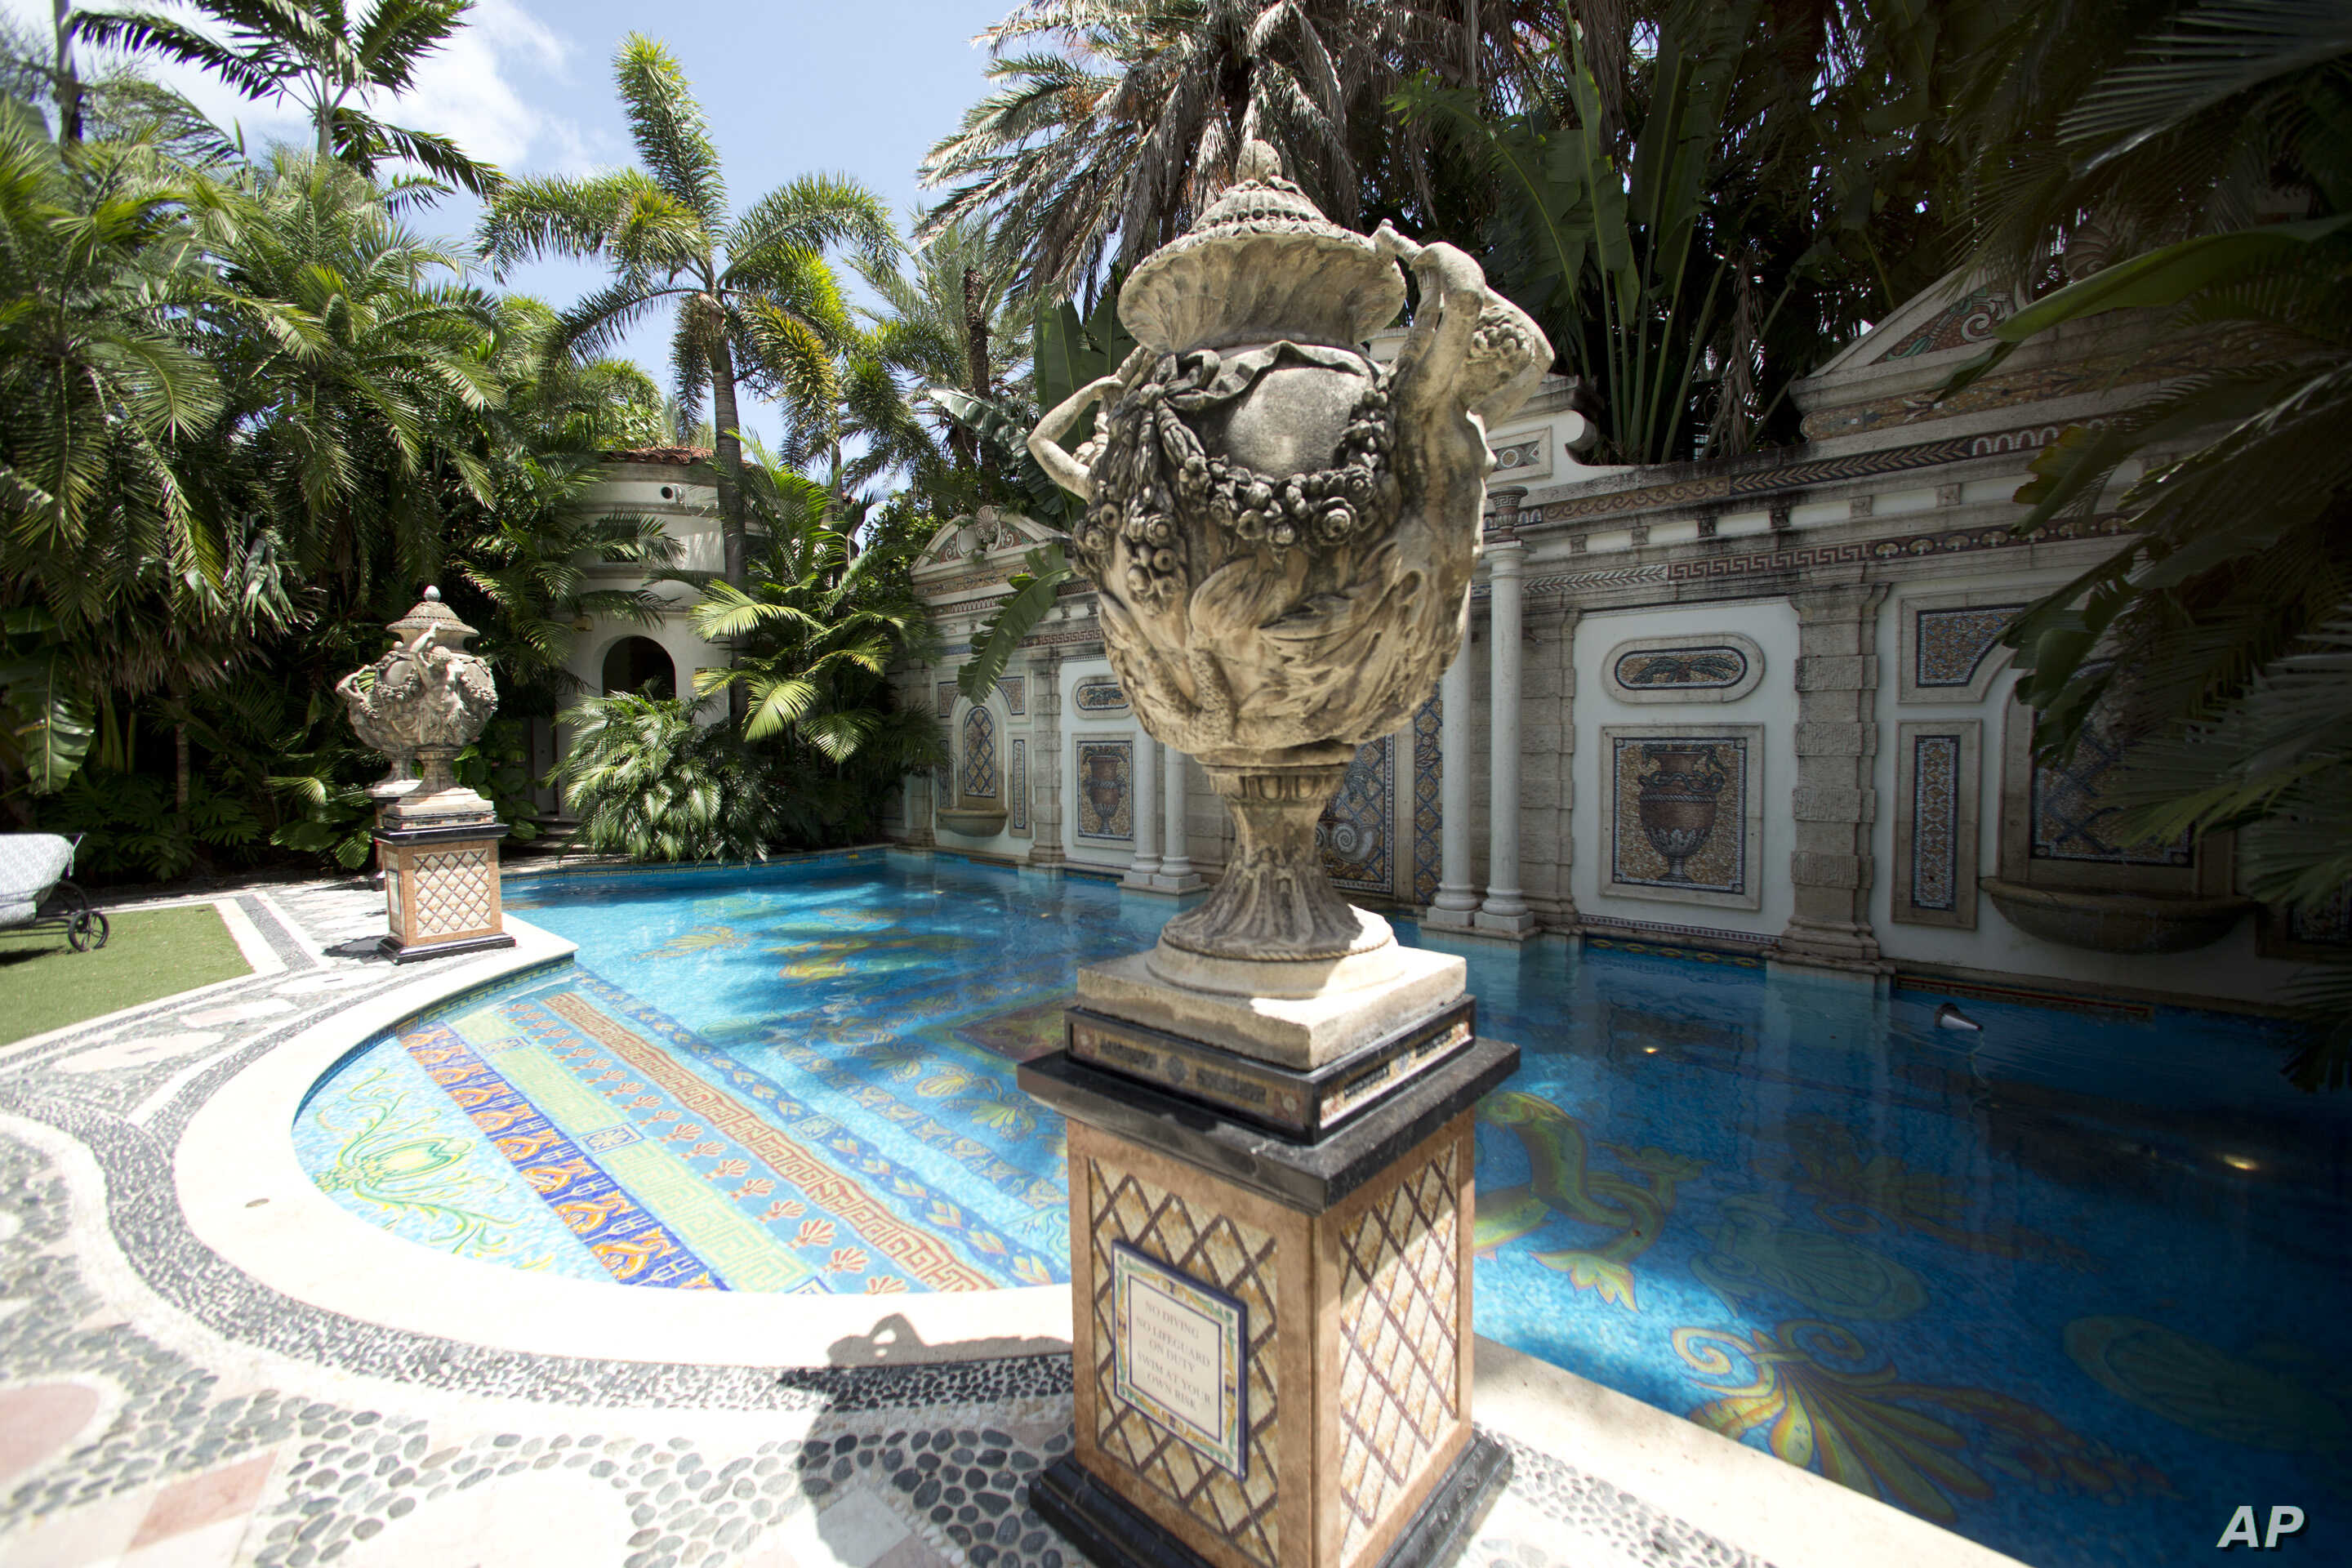 Decorative artwork stands in front of the 55-foot long swimming pool at the Versace mansion in Miami Beach, Fl.,  July 23, 2013.